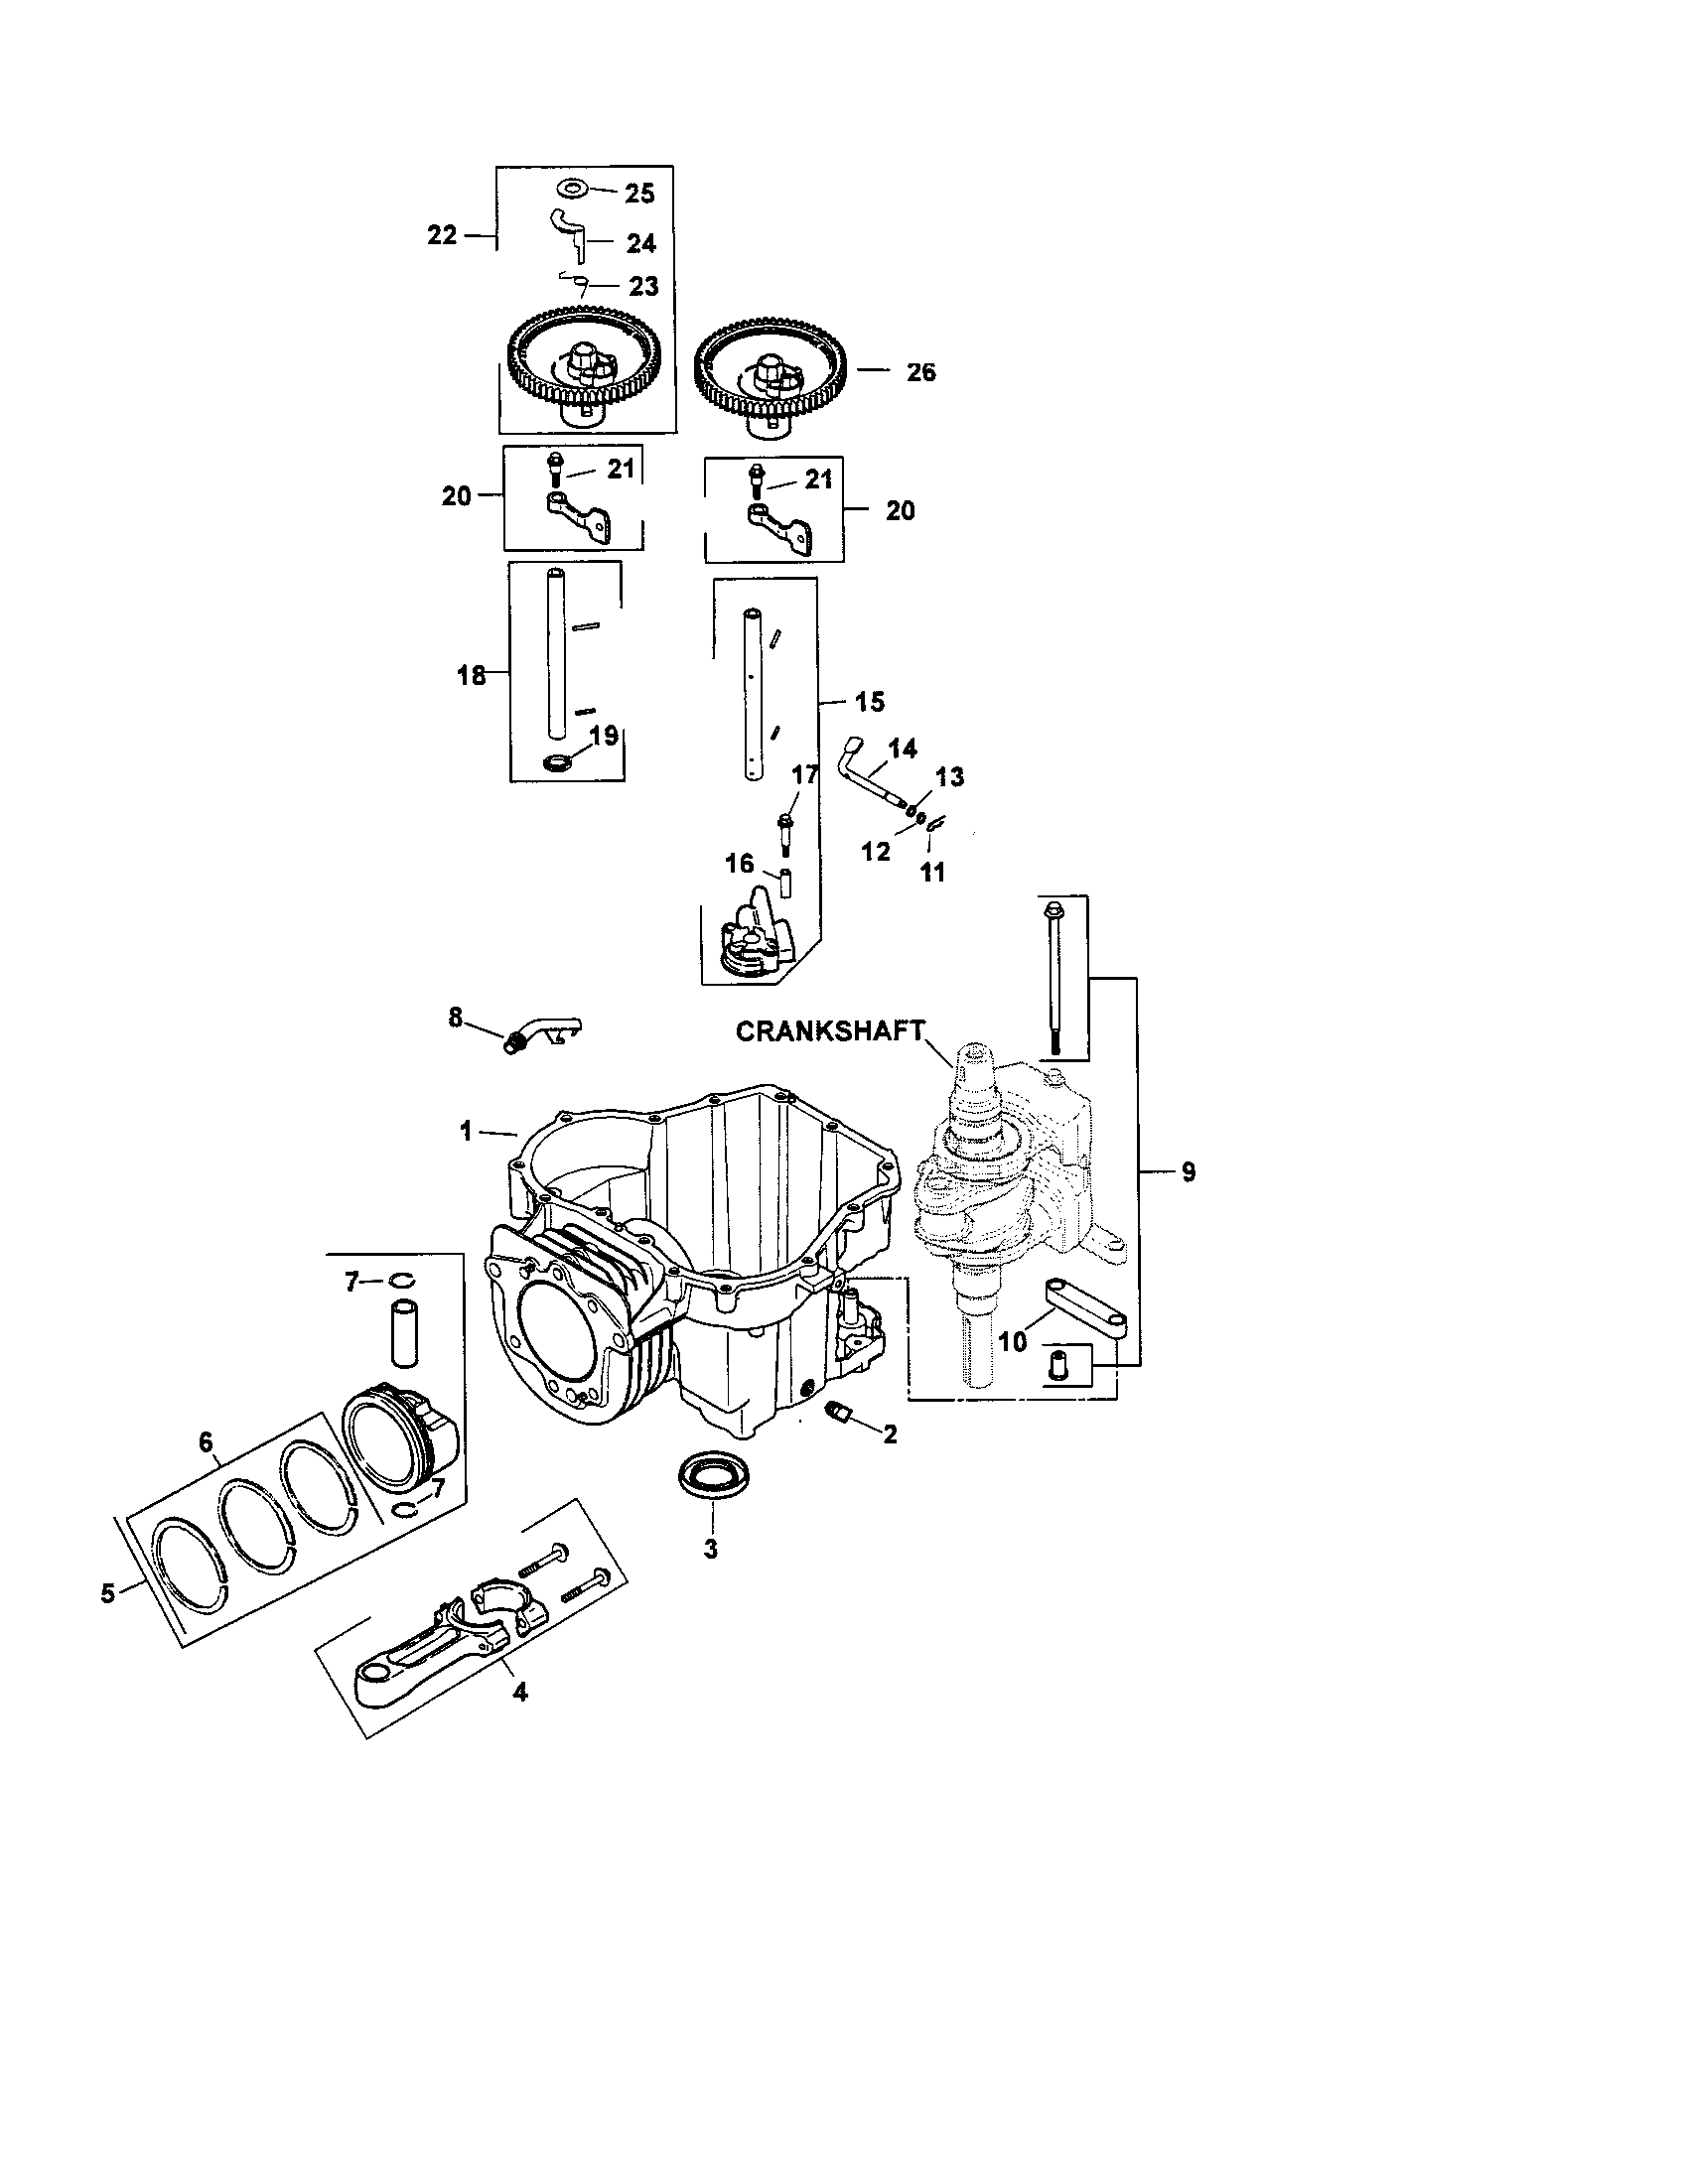 Kohler model SV620-0018 engine genuine parts